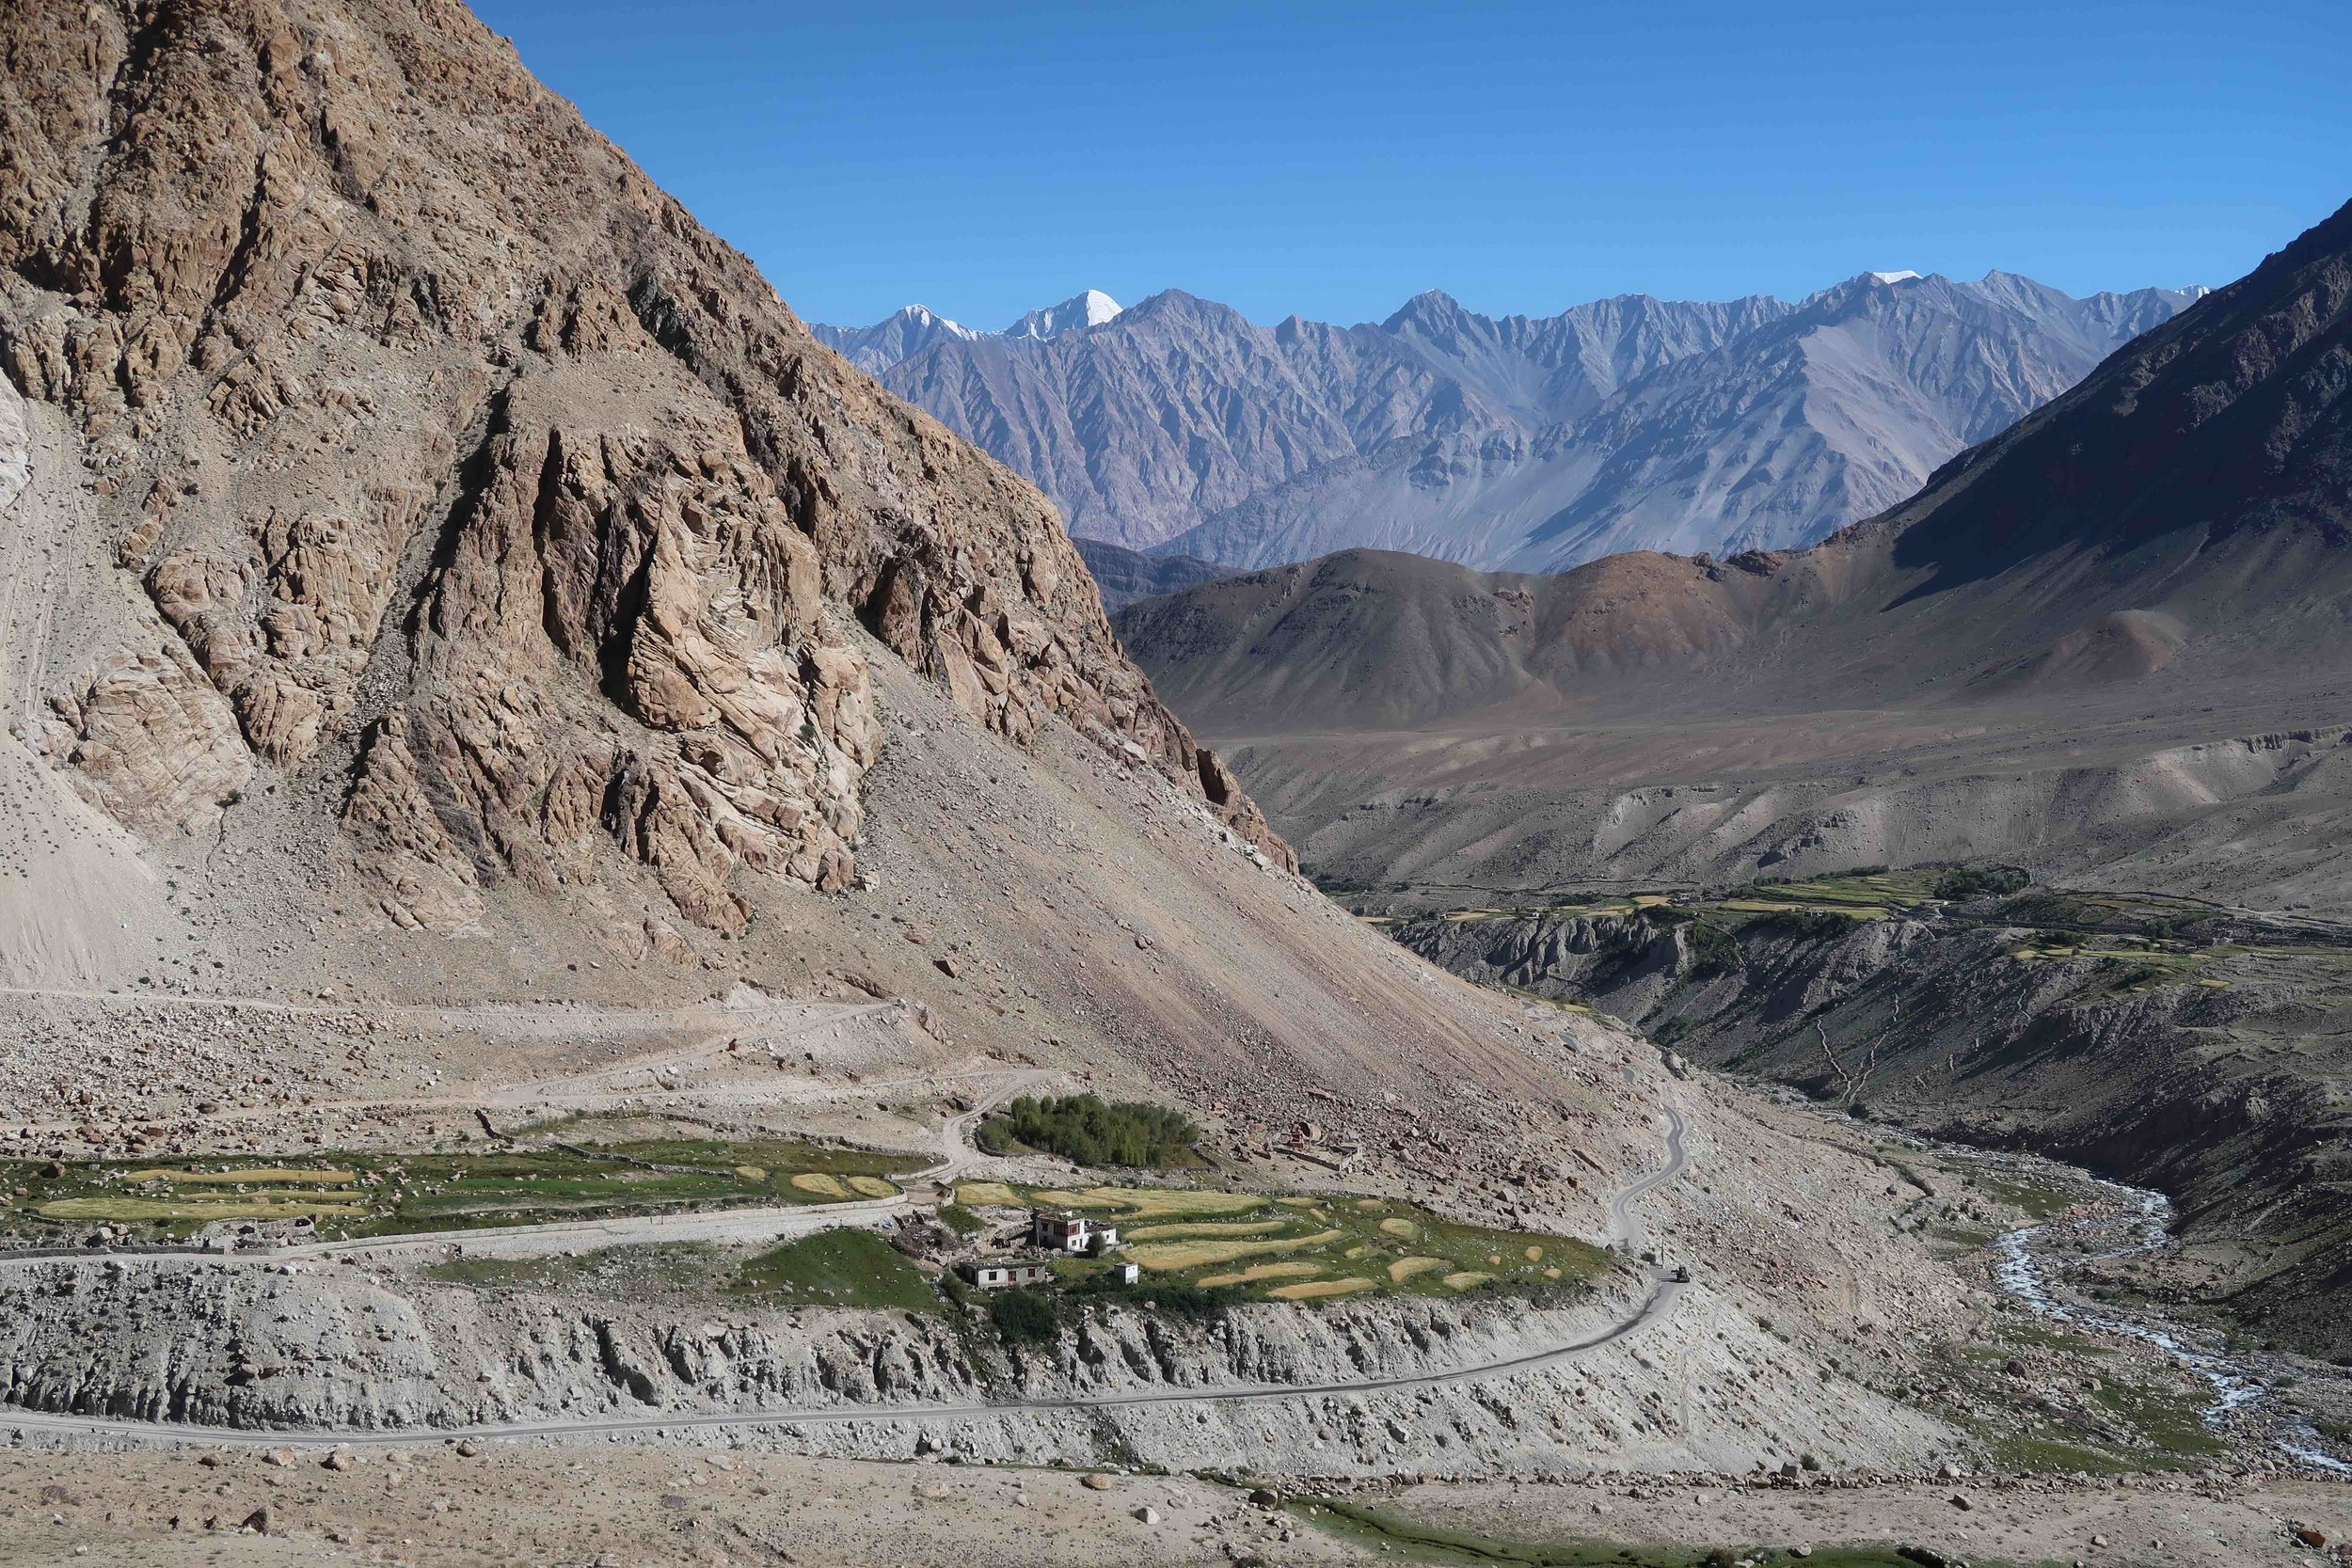 Nubra Valley in Ladakh - India. Stunning scenery on a Grand-Canyon scale!